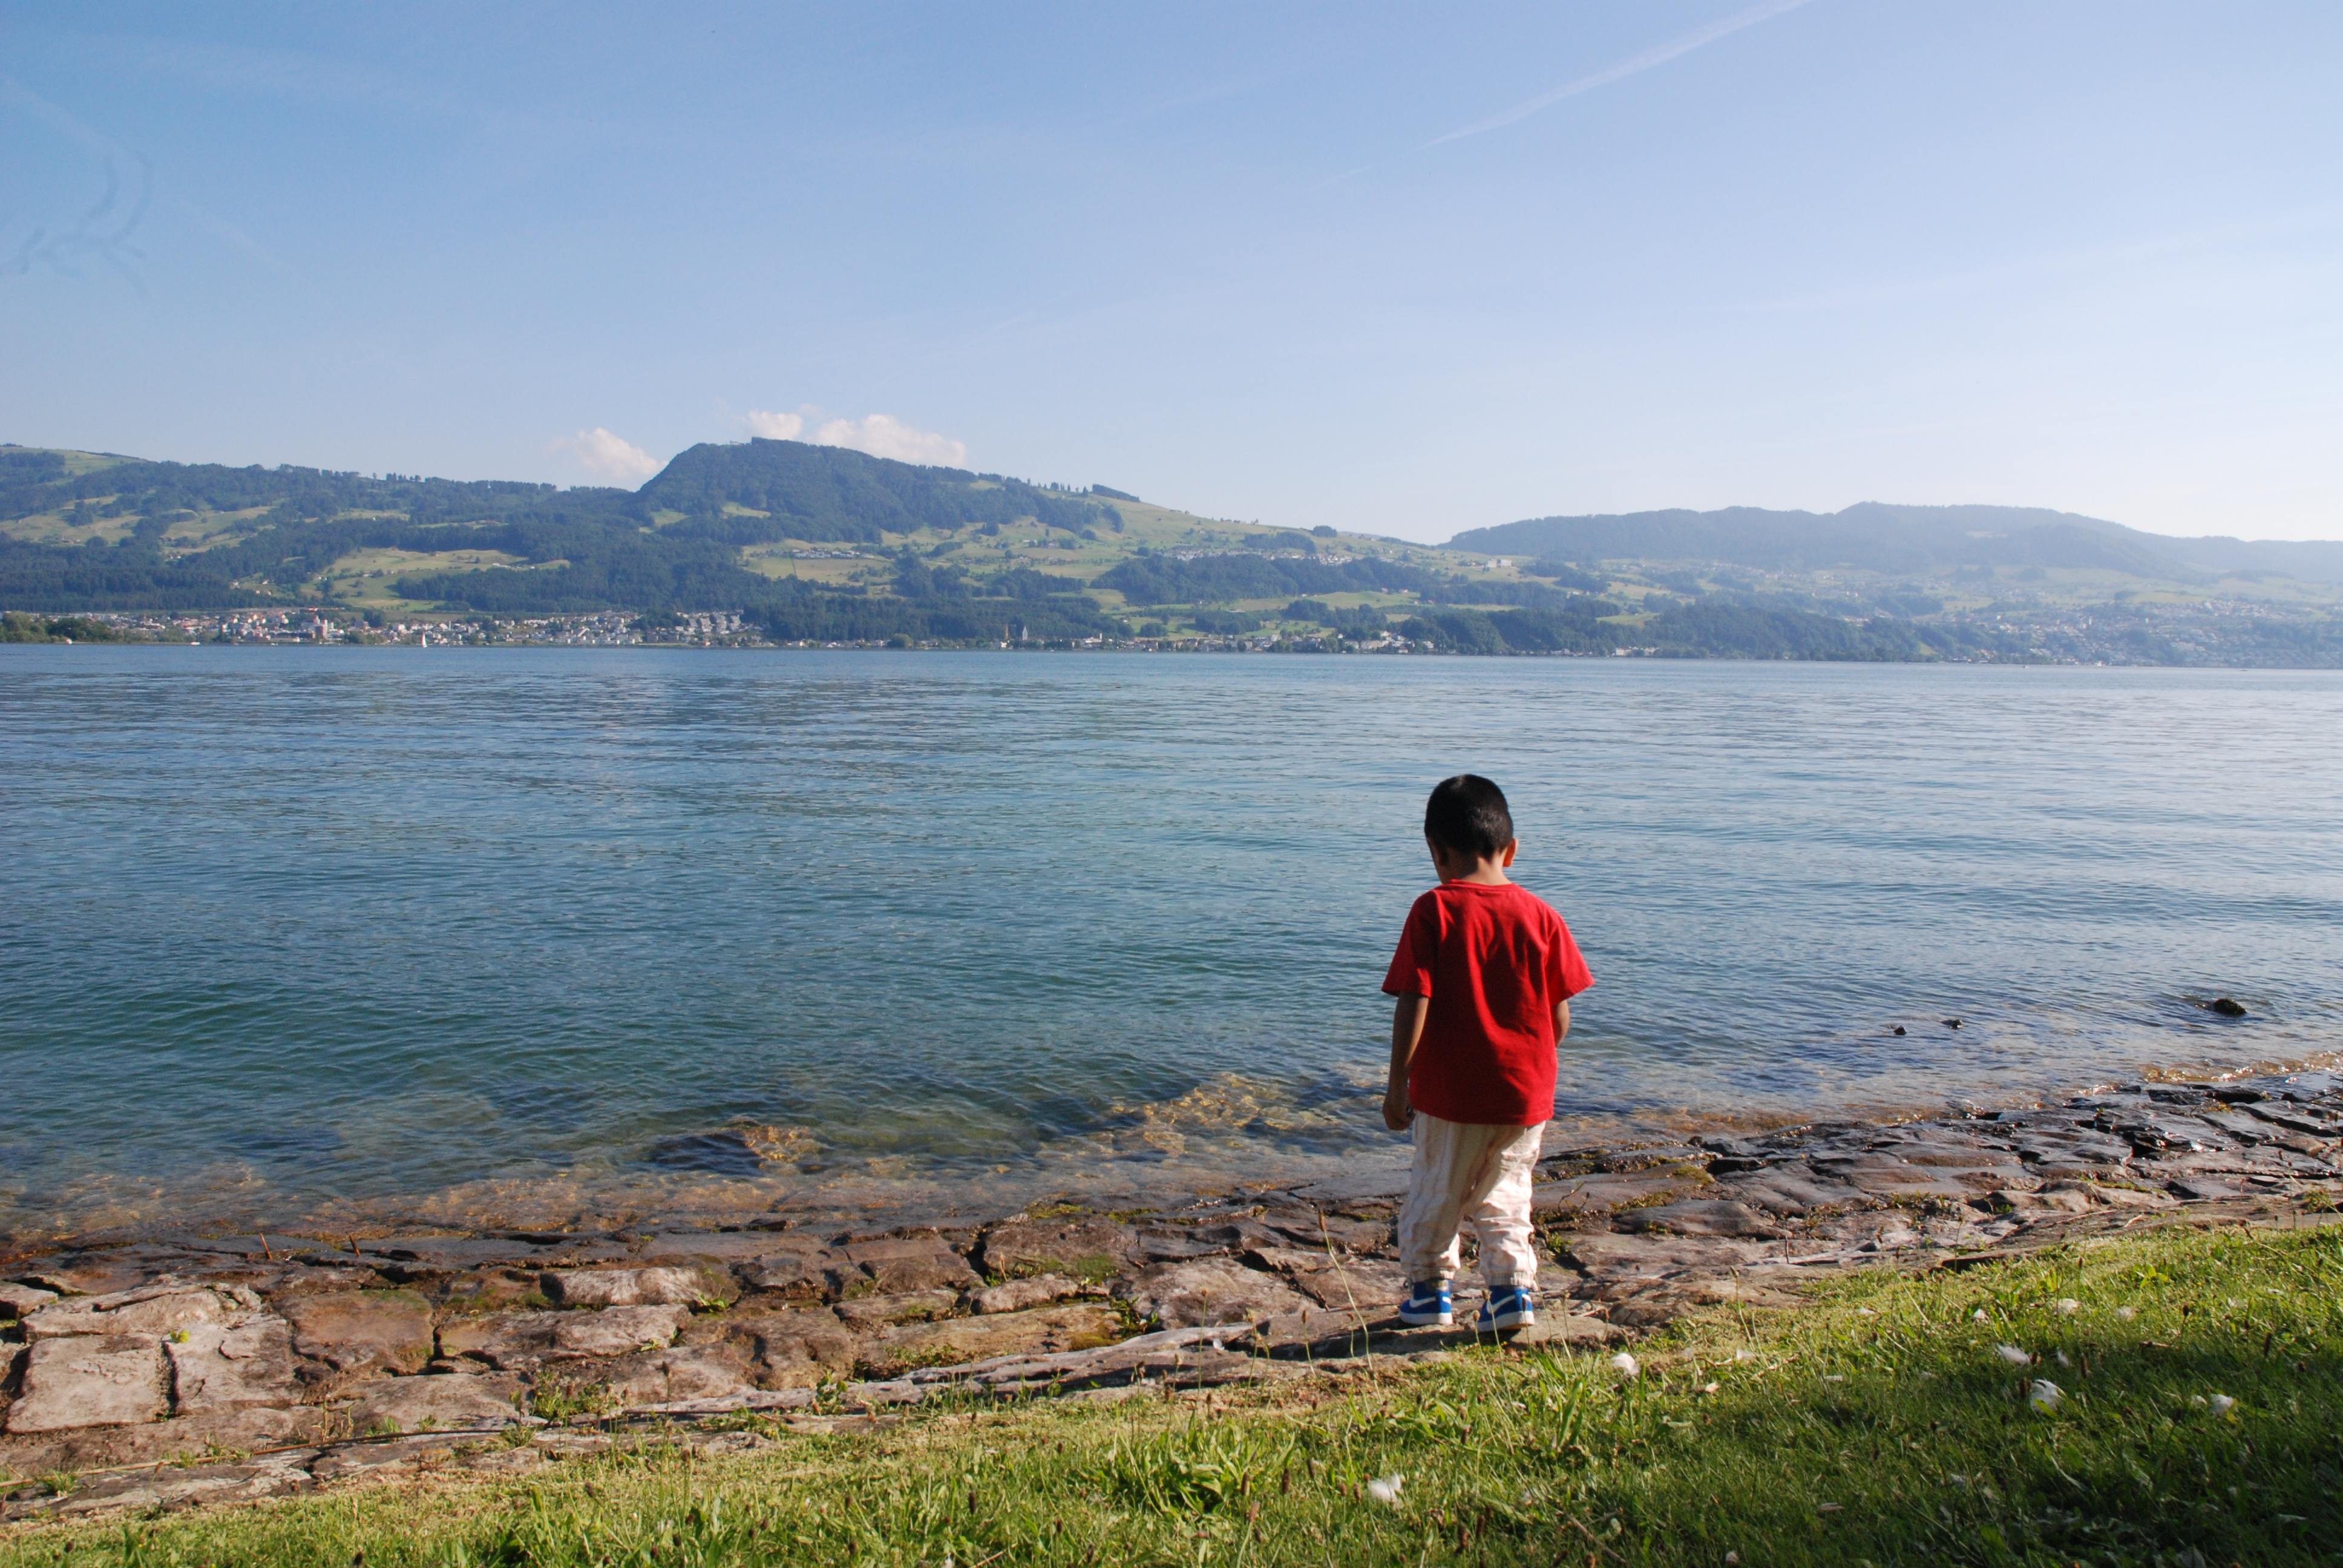 Hello Lake Zurich. Mum, may I touch the water?